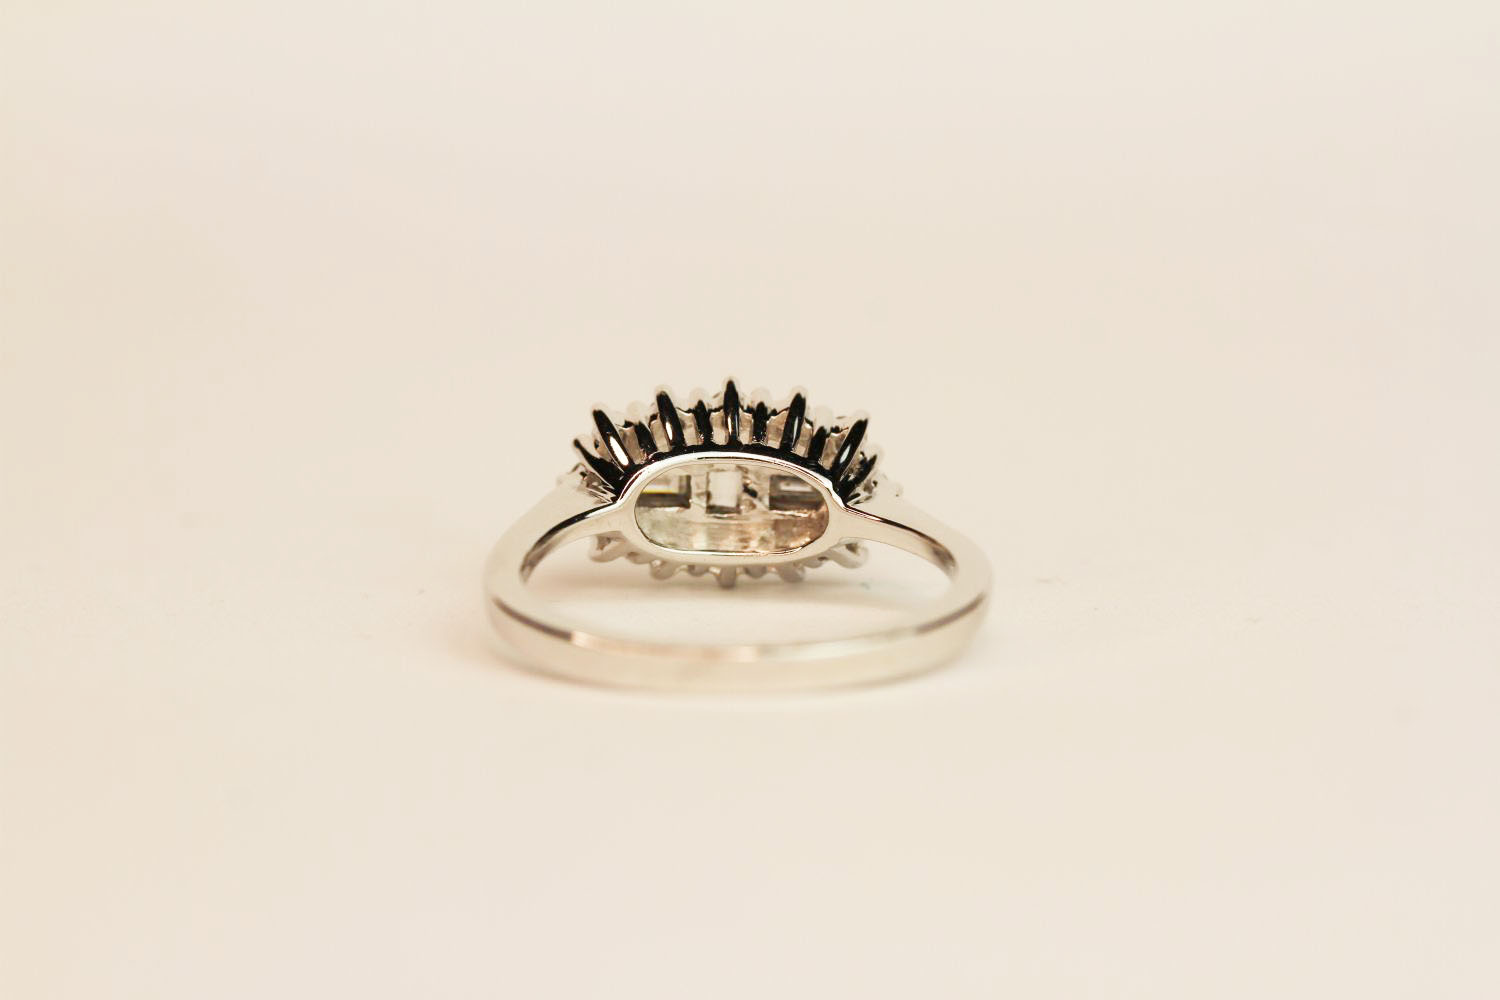 18ct white gold diamond fancy cluster ring. Baguette and round brilliant cut diamonds 0.50 ct, - Image 3 of 3